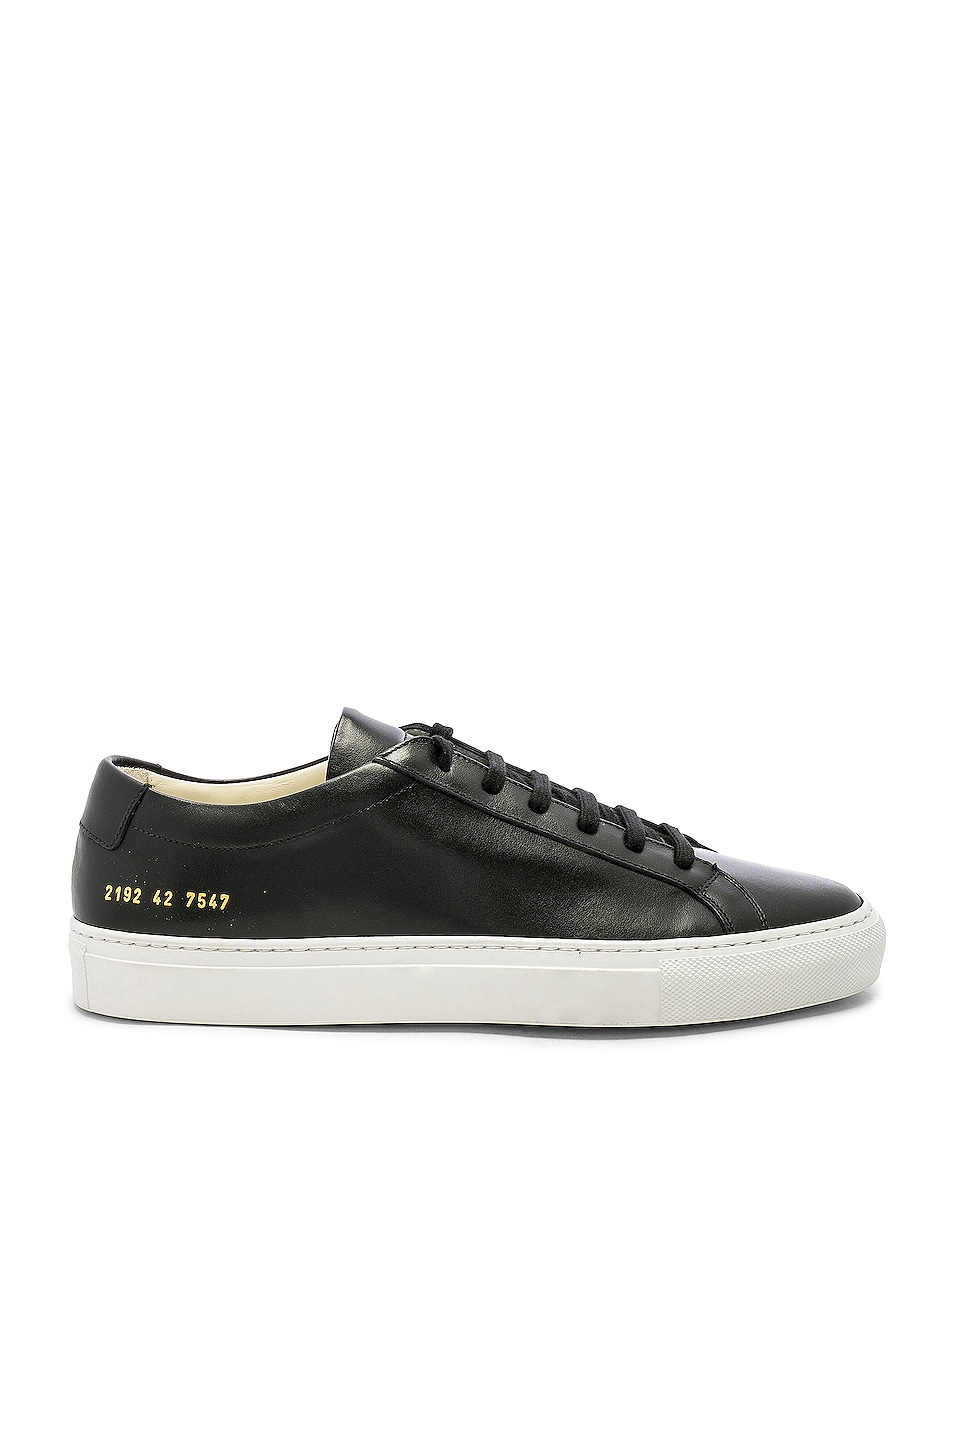 Image 1 of Common Projects Original Leather Achilles with White Sole in Black